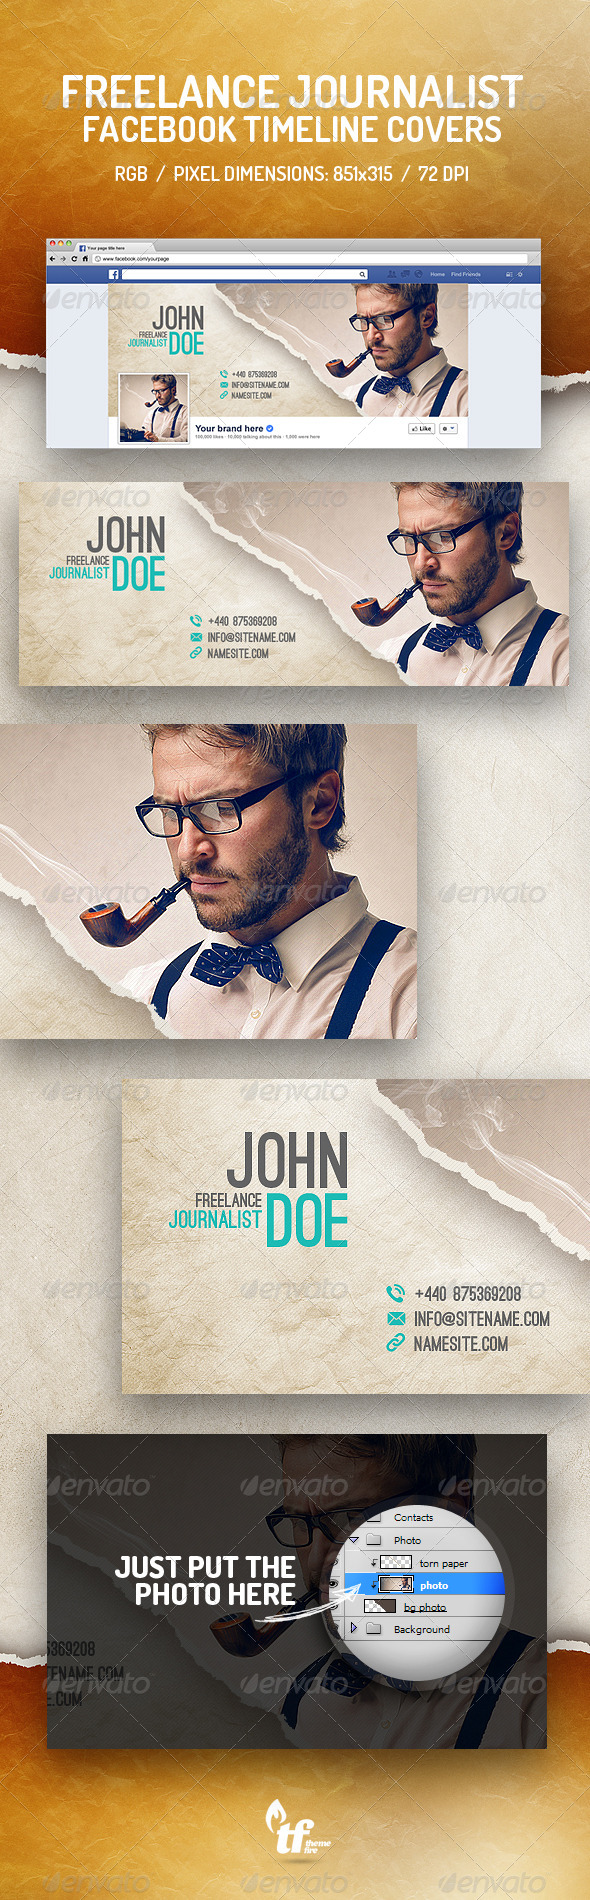 GraphicRiver Freelance Journalist Timeline Covers 8782913